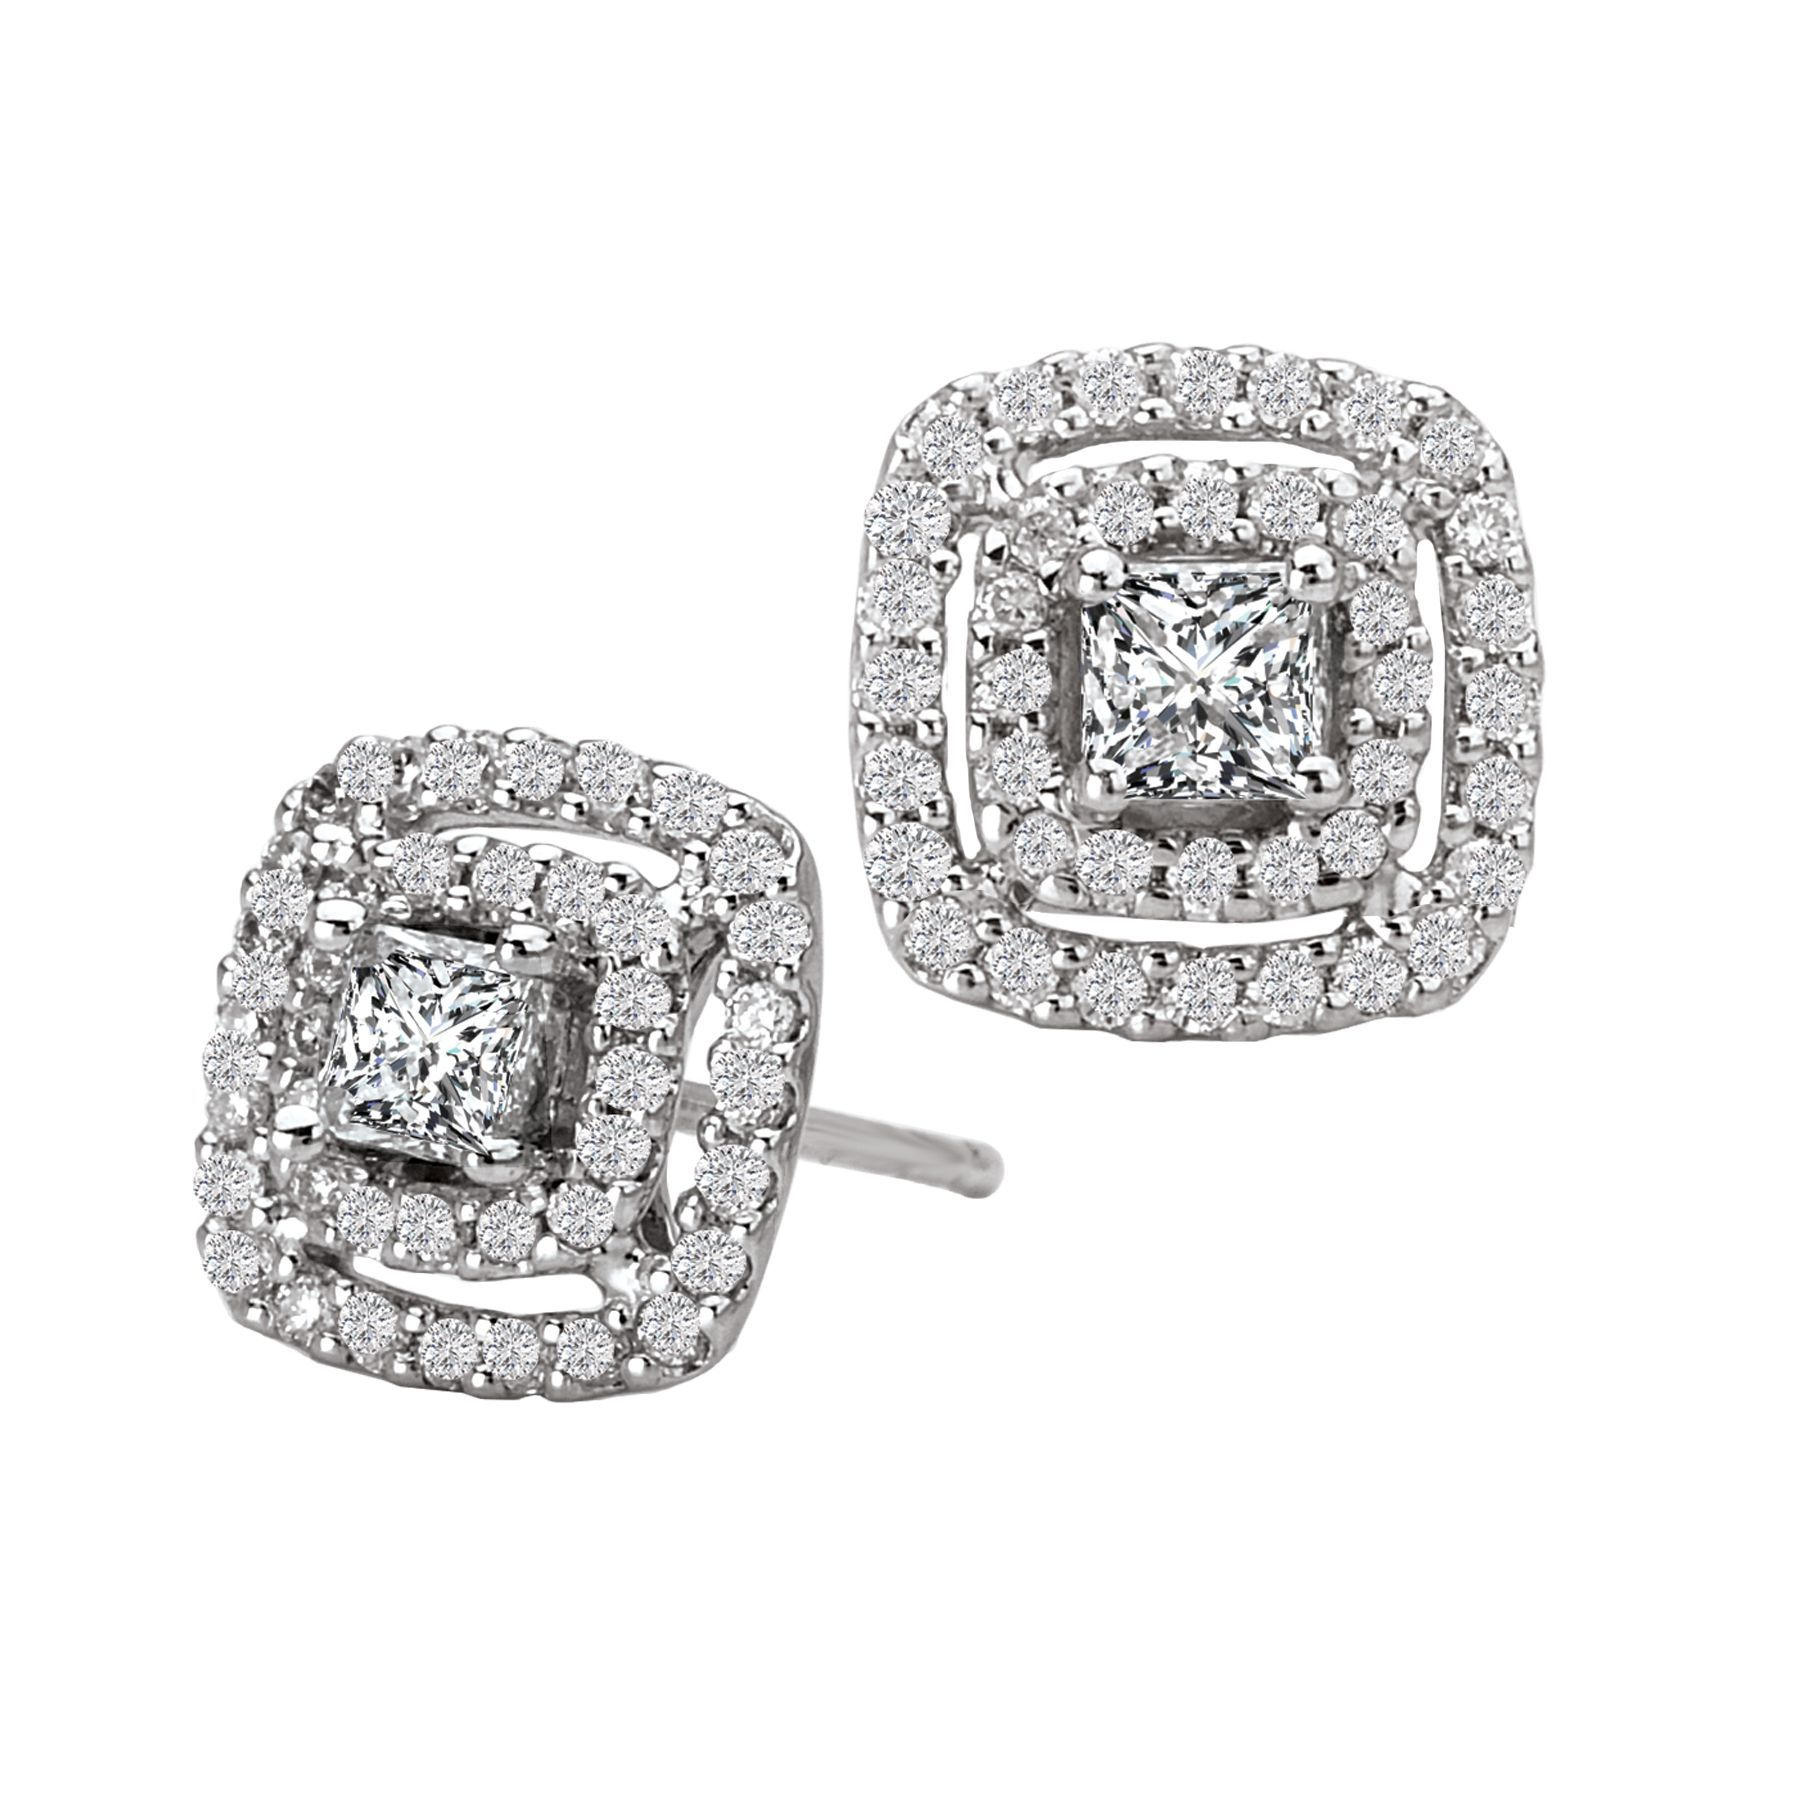 Diamond Princess Cut Halo Stud Earrings in 14K White Gold